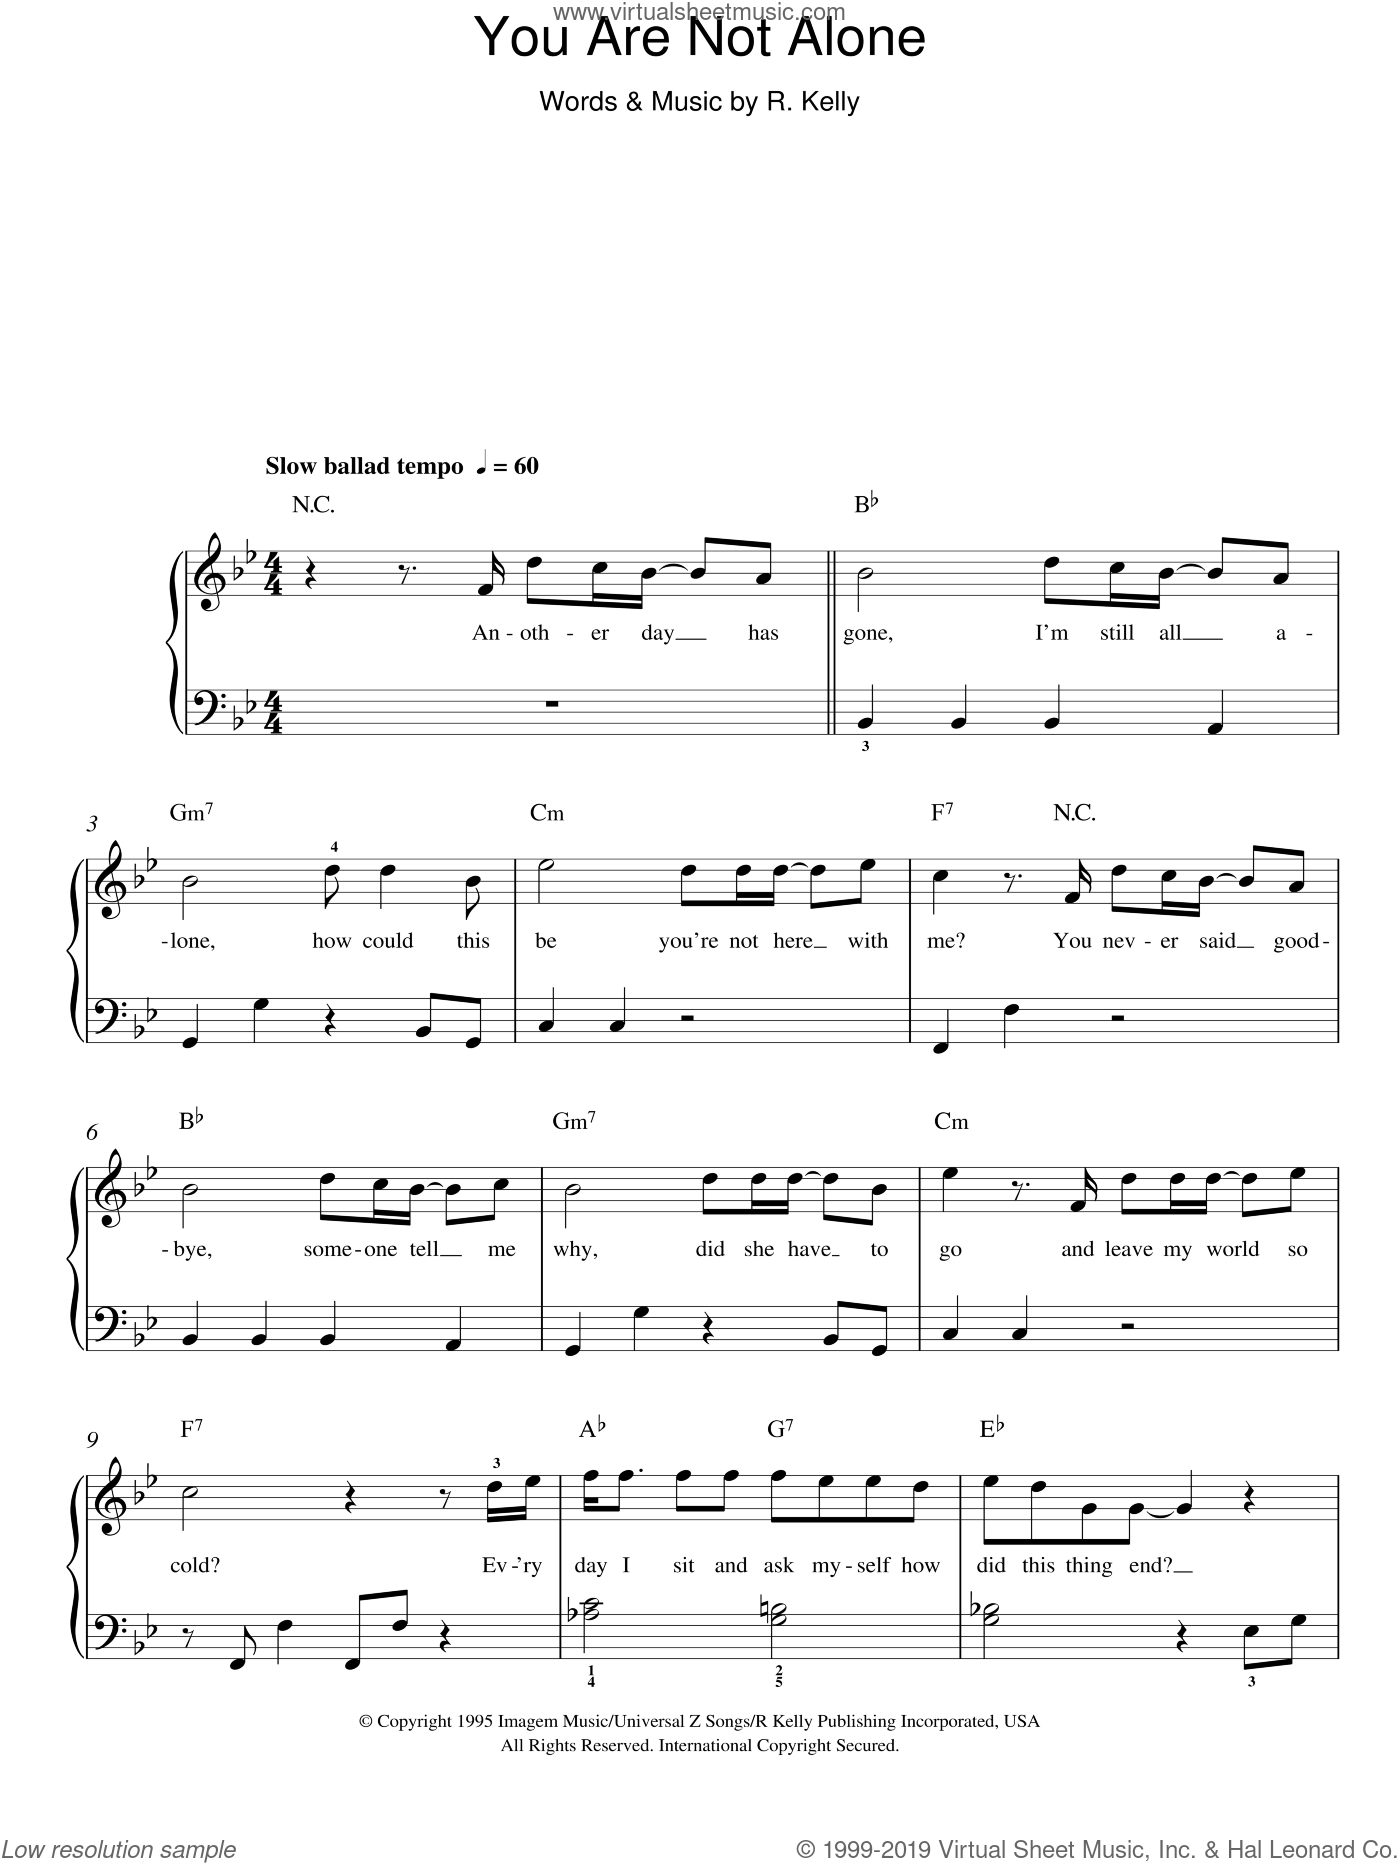 You Are Not Alone sheet music for piano solo by Michael Jackson